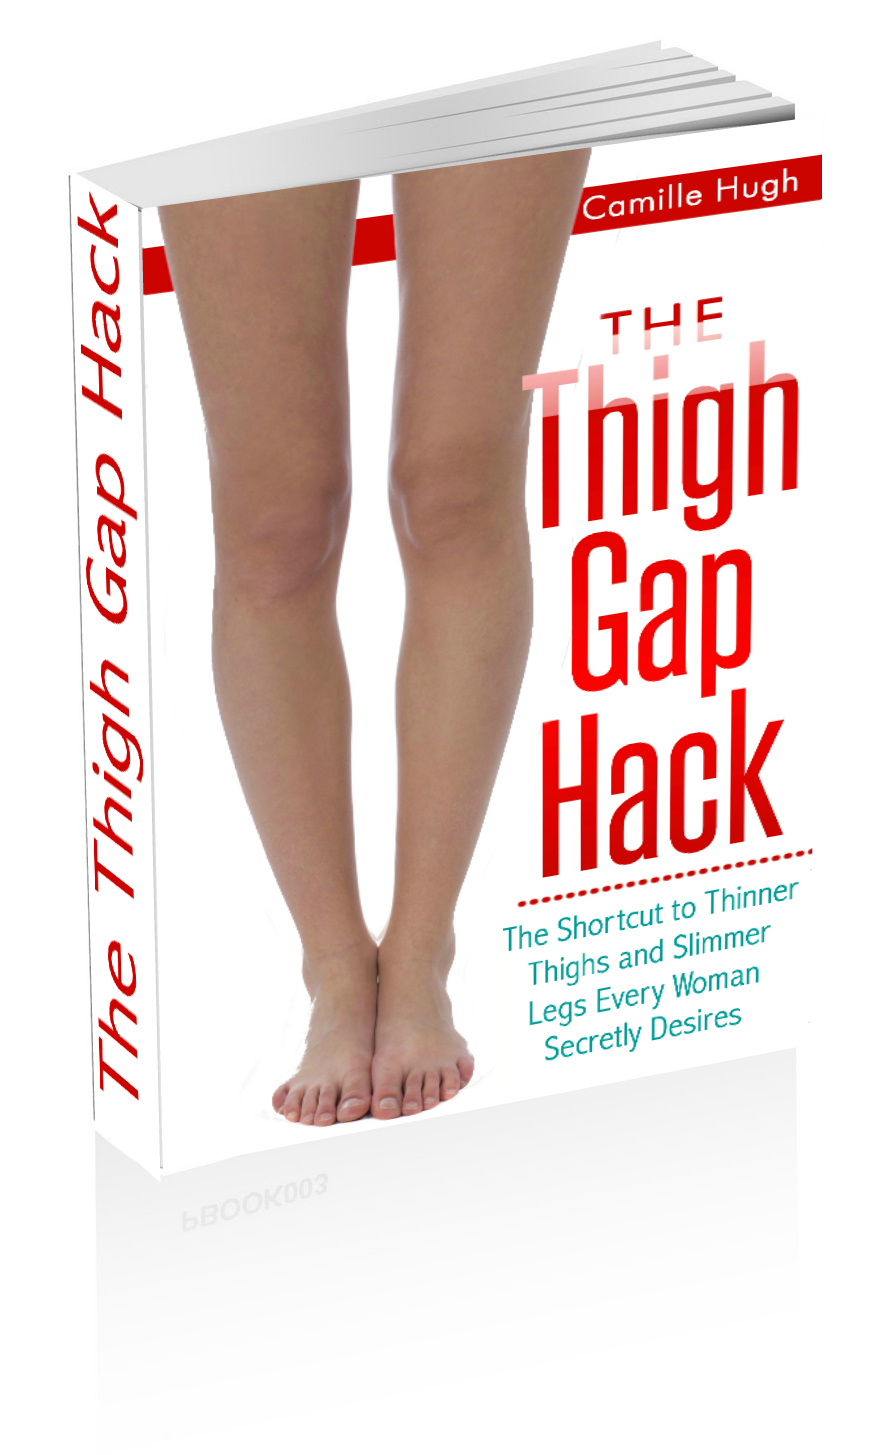 Hot to Get a Thigh Gap and Skinny Legs - even with narrow hips (without starving!)